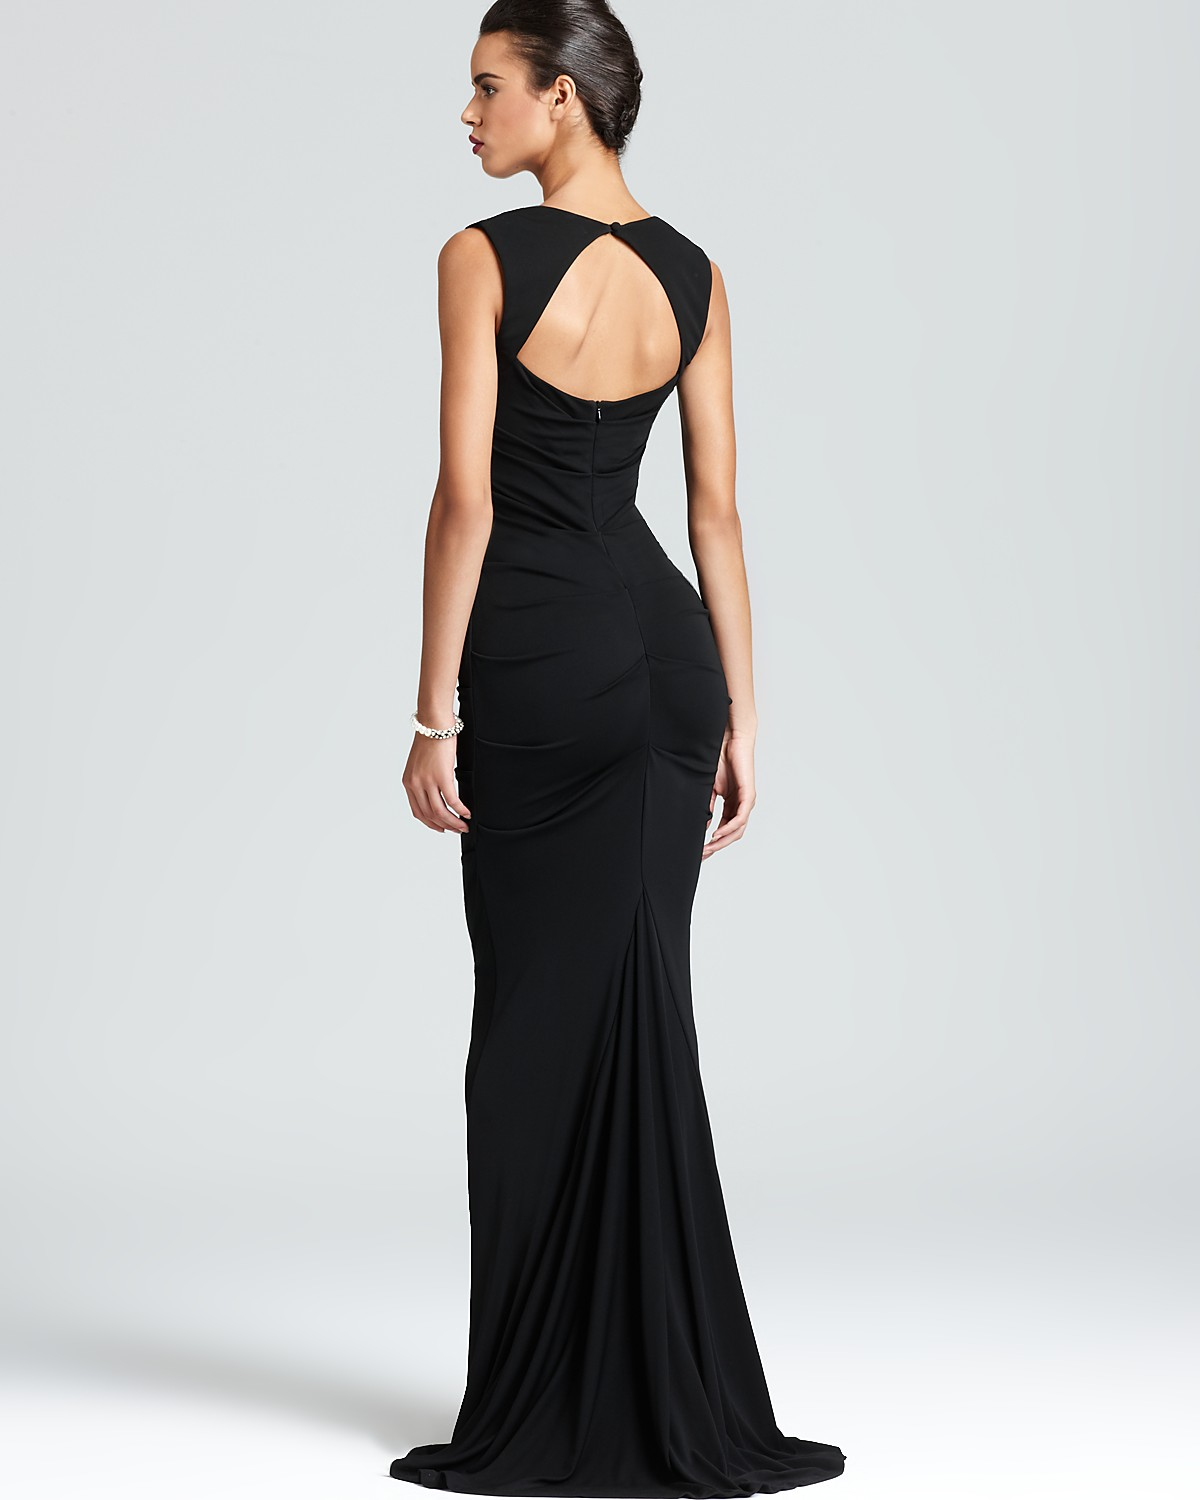 Nicole Miller Gown - Sleeveless Stretch | Bloomingdales - $420.00 ...